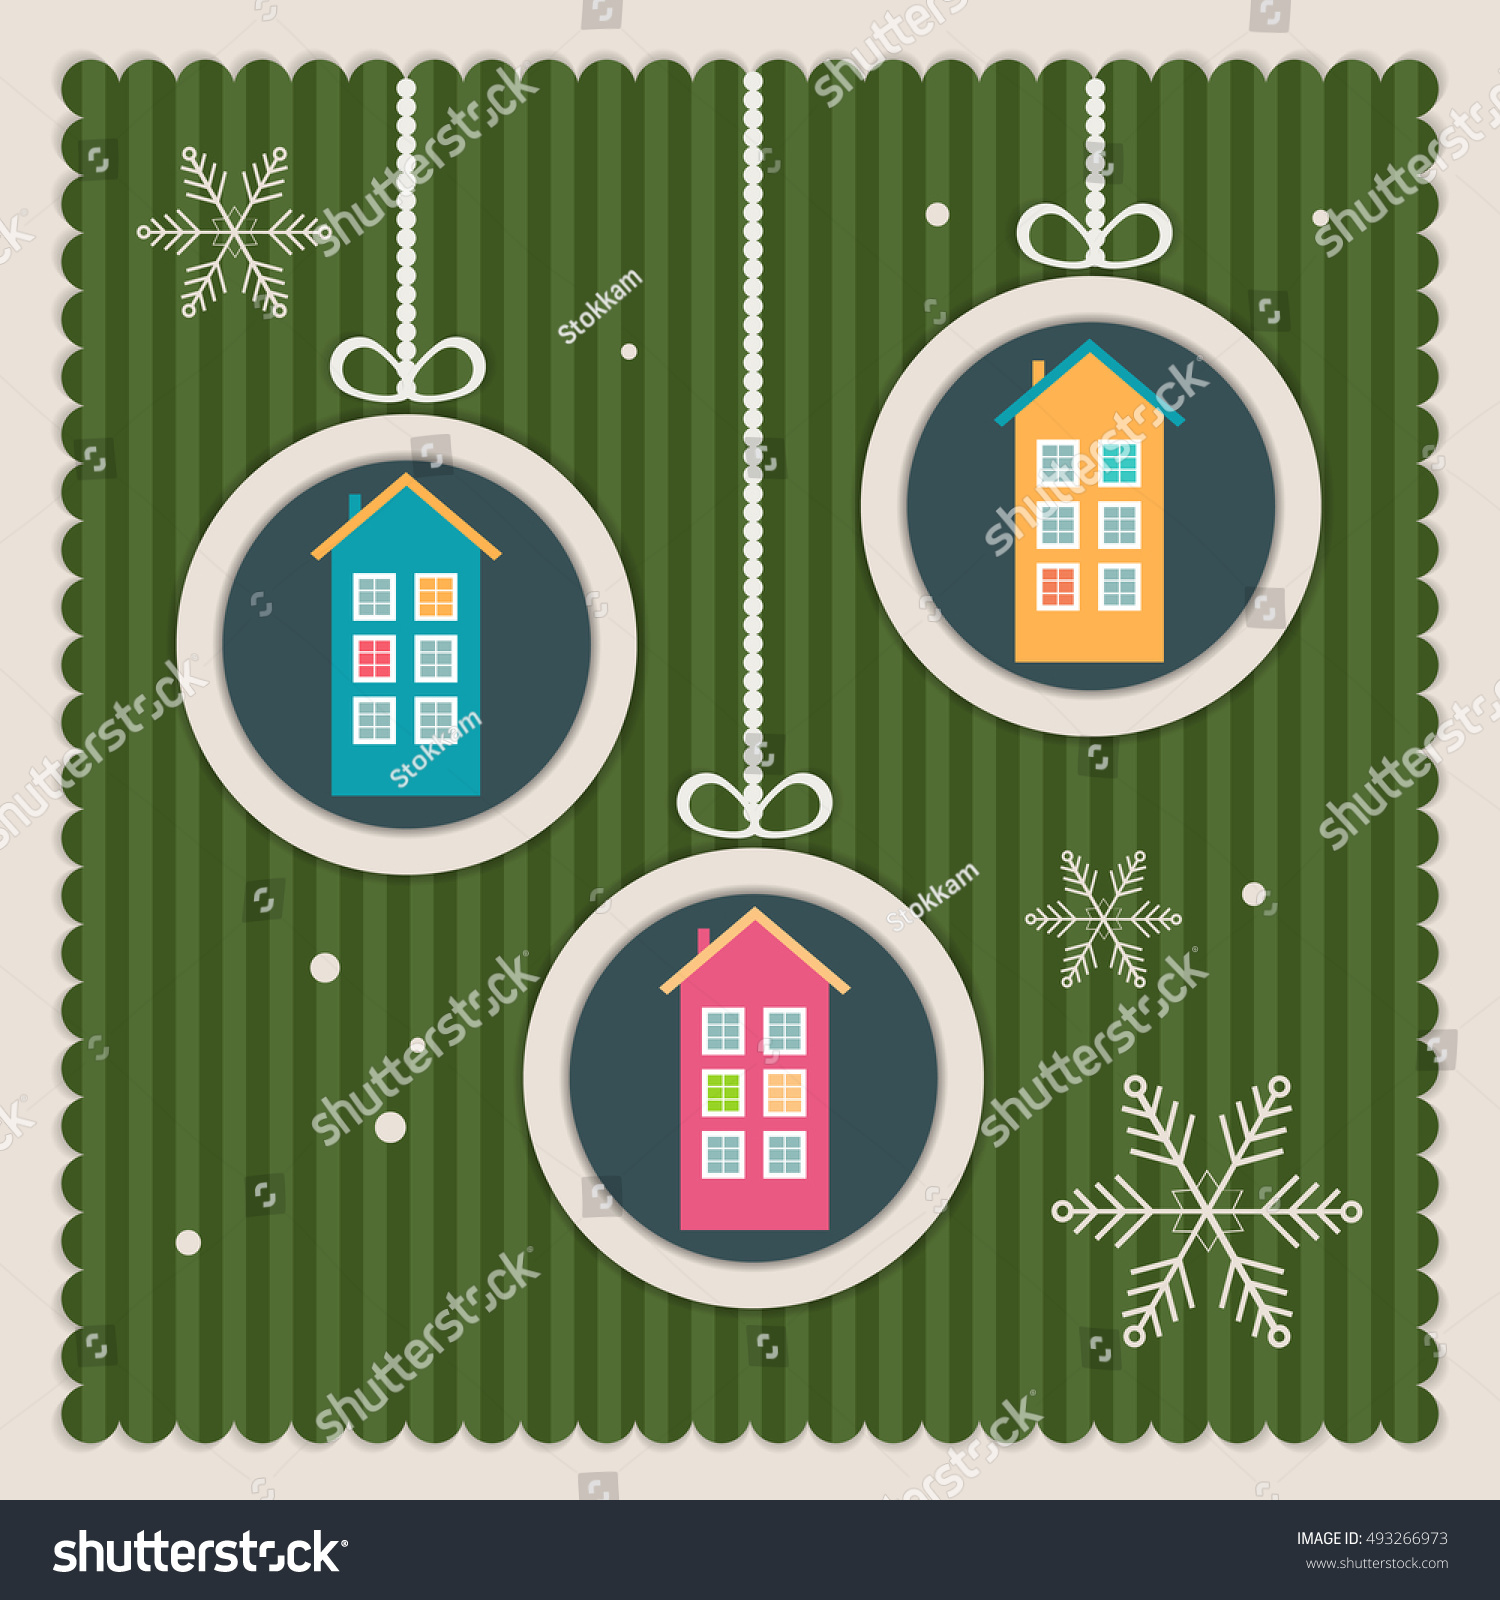 Real Estate Christmas Card Colorful Houses Stock Vector (Royalty ...